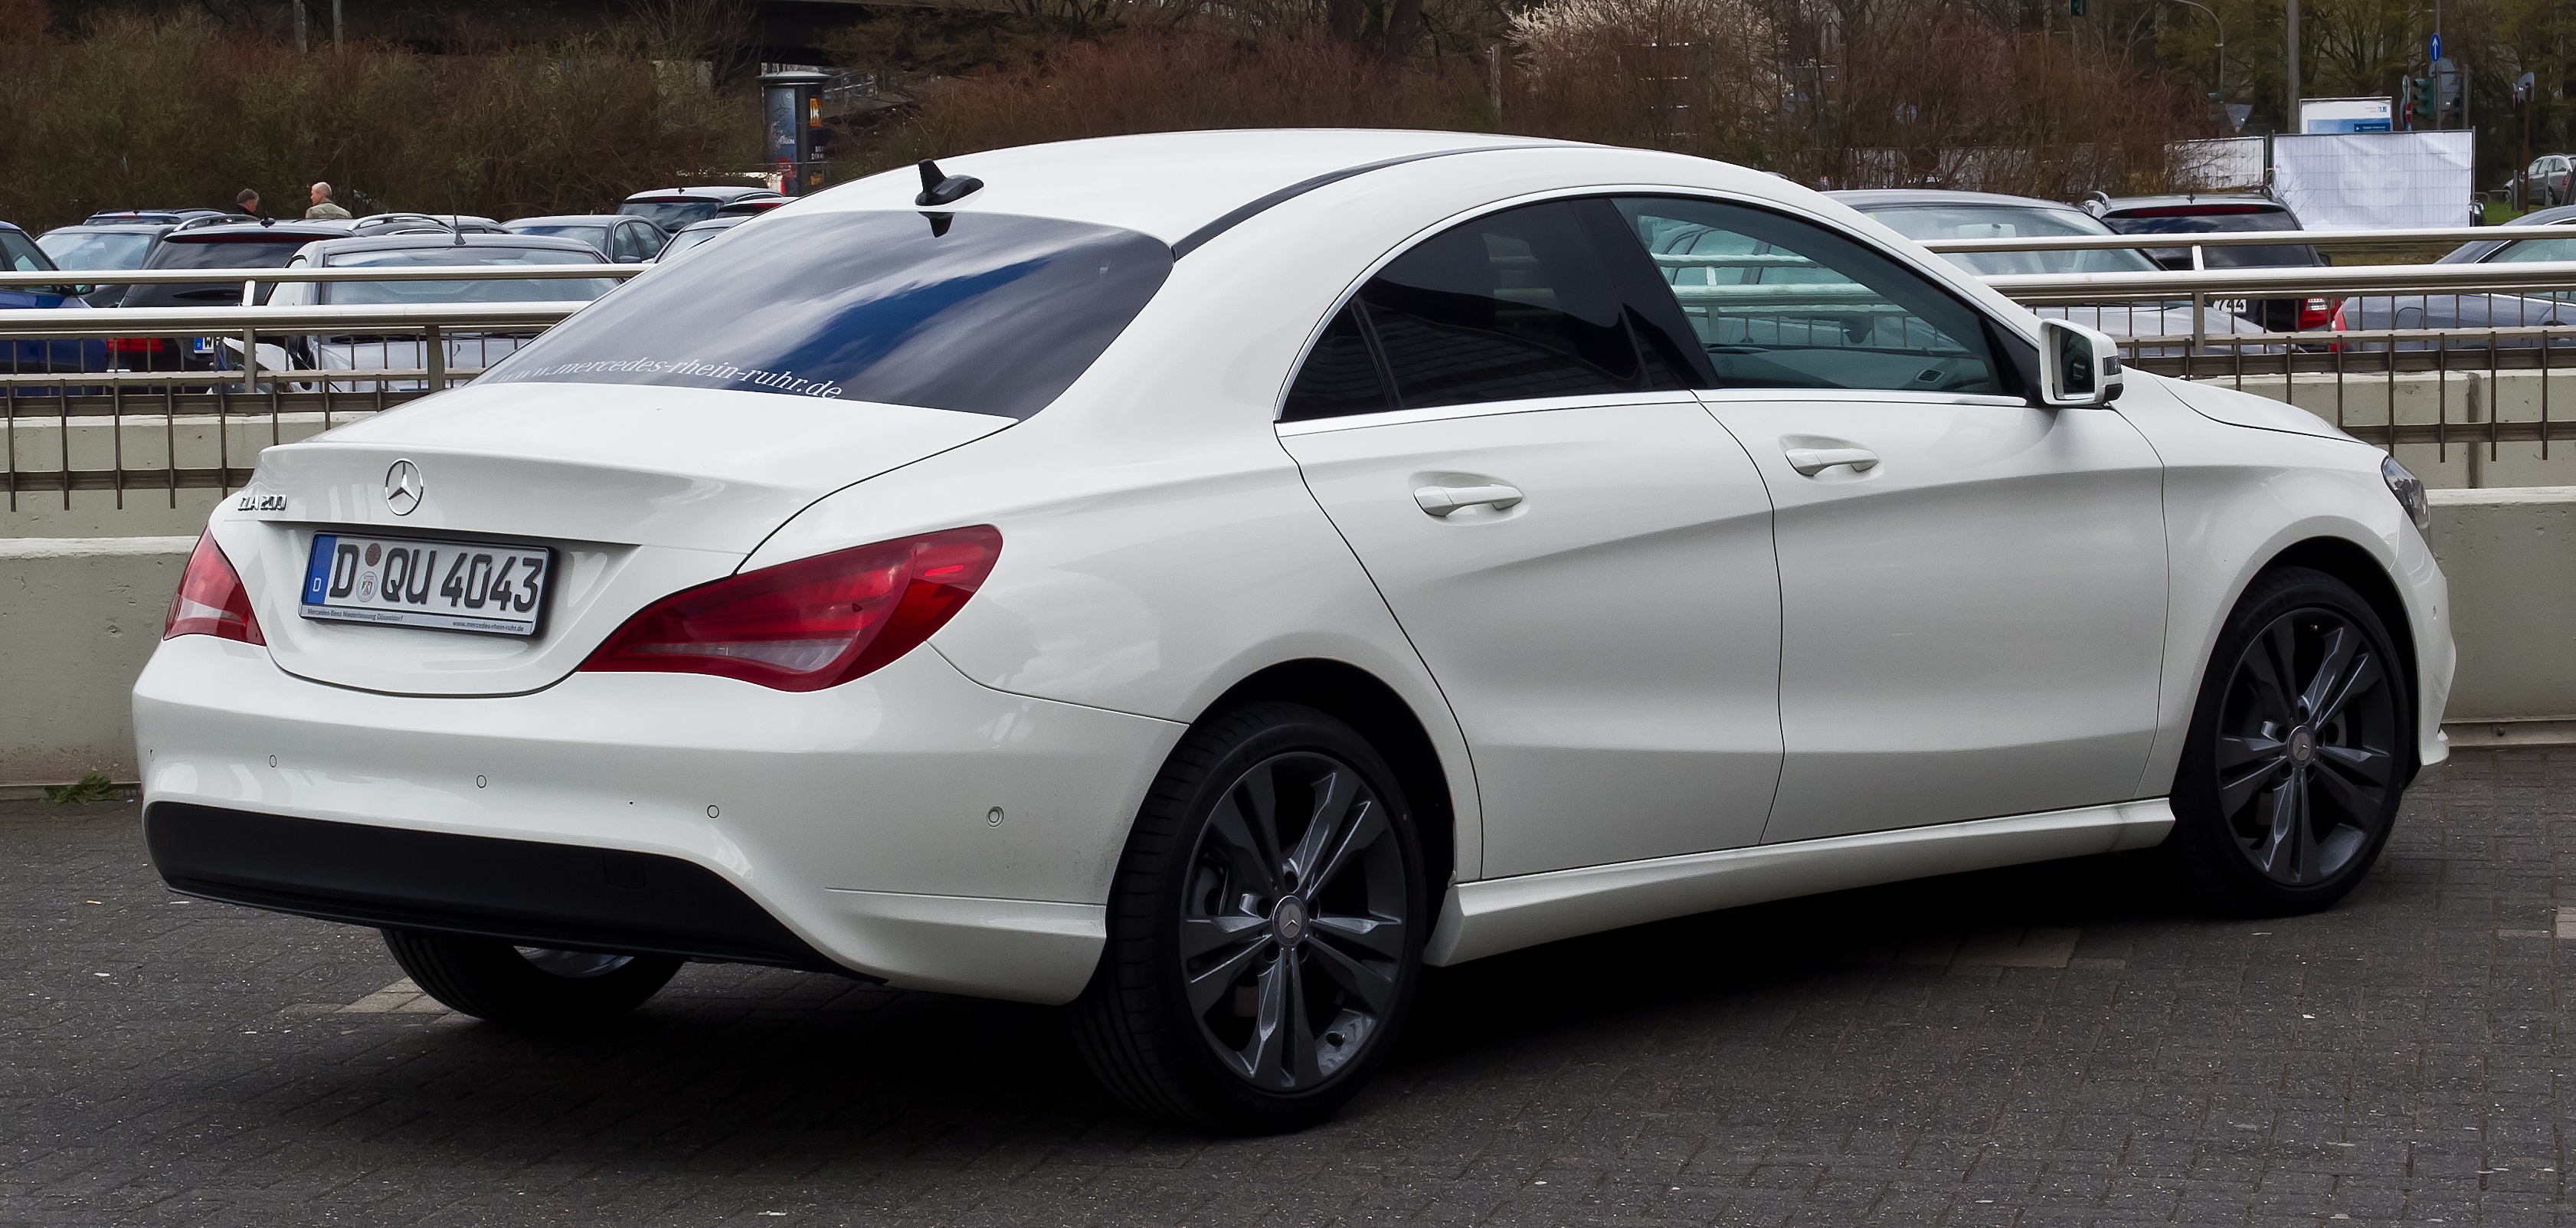 Image gallery mb cla for Mercedes benz cla 200 price